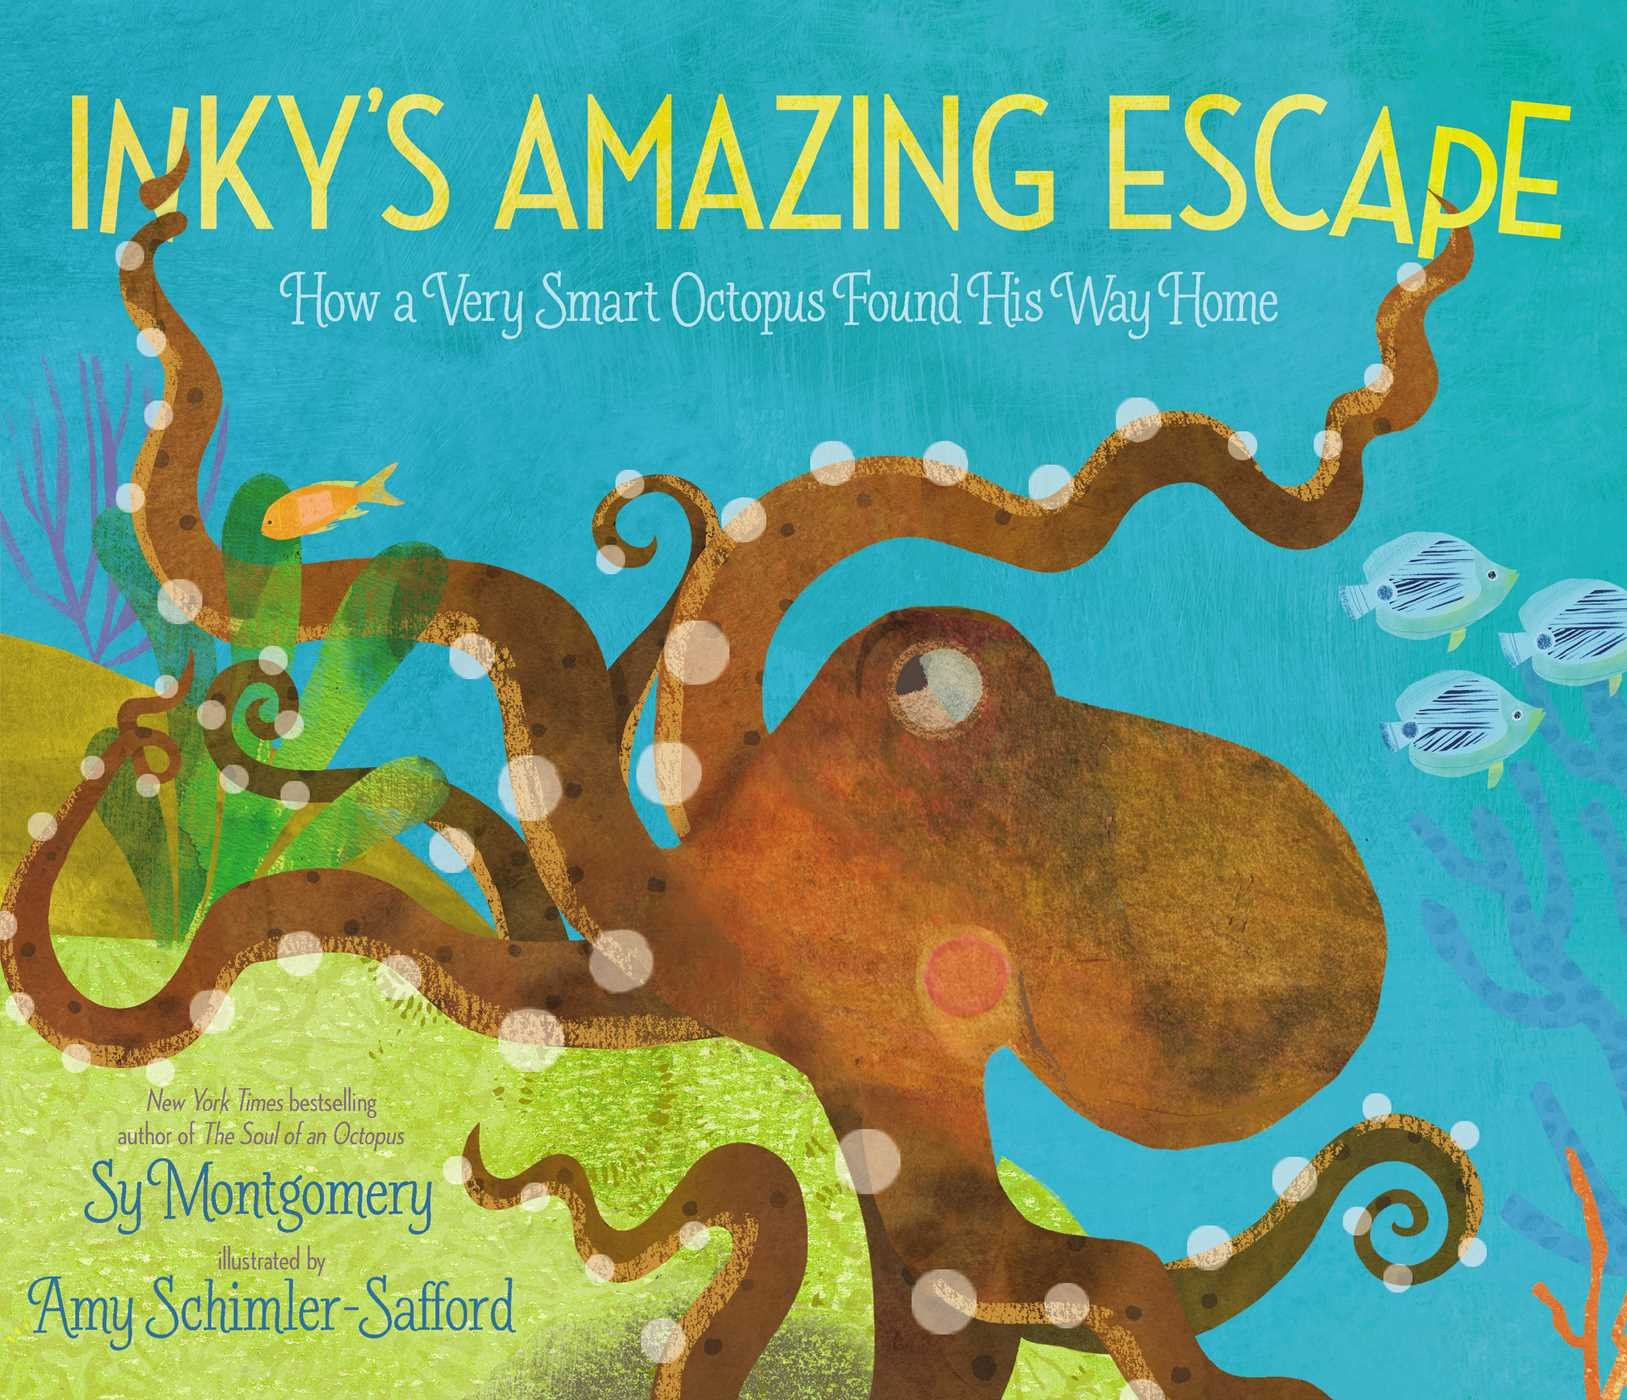 How a Very Smart Octopus Found His Way Home Inkys Amazing Escape